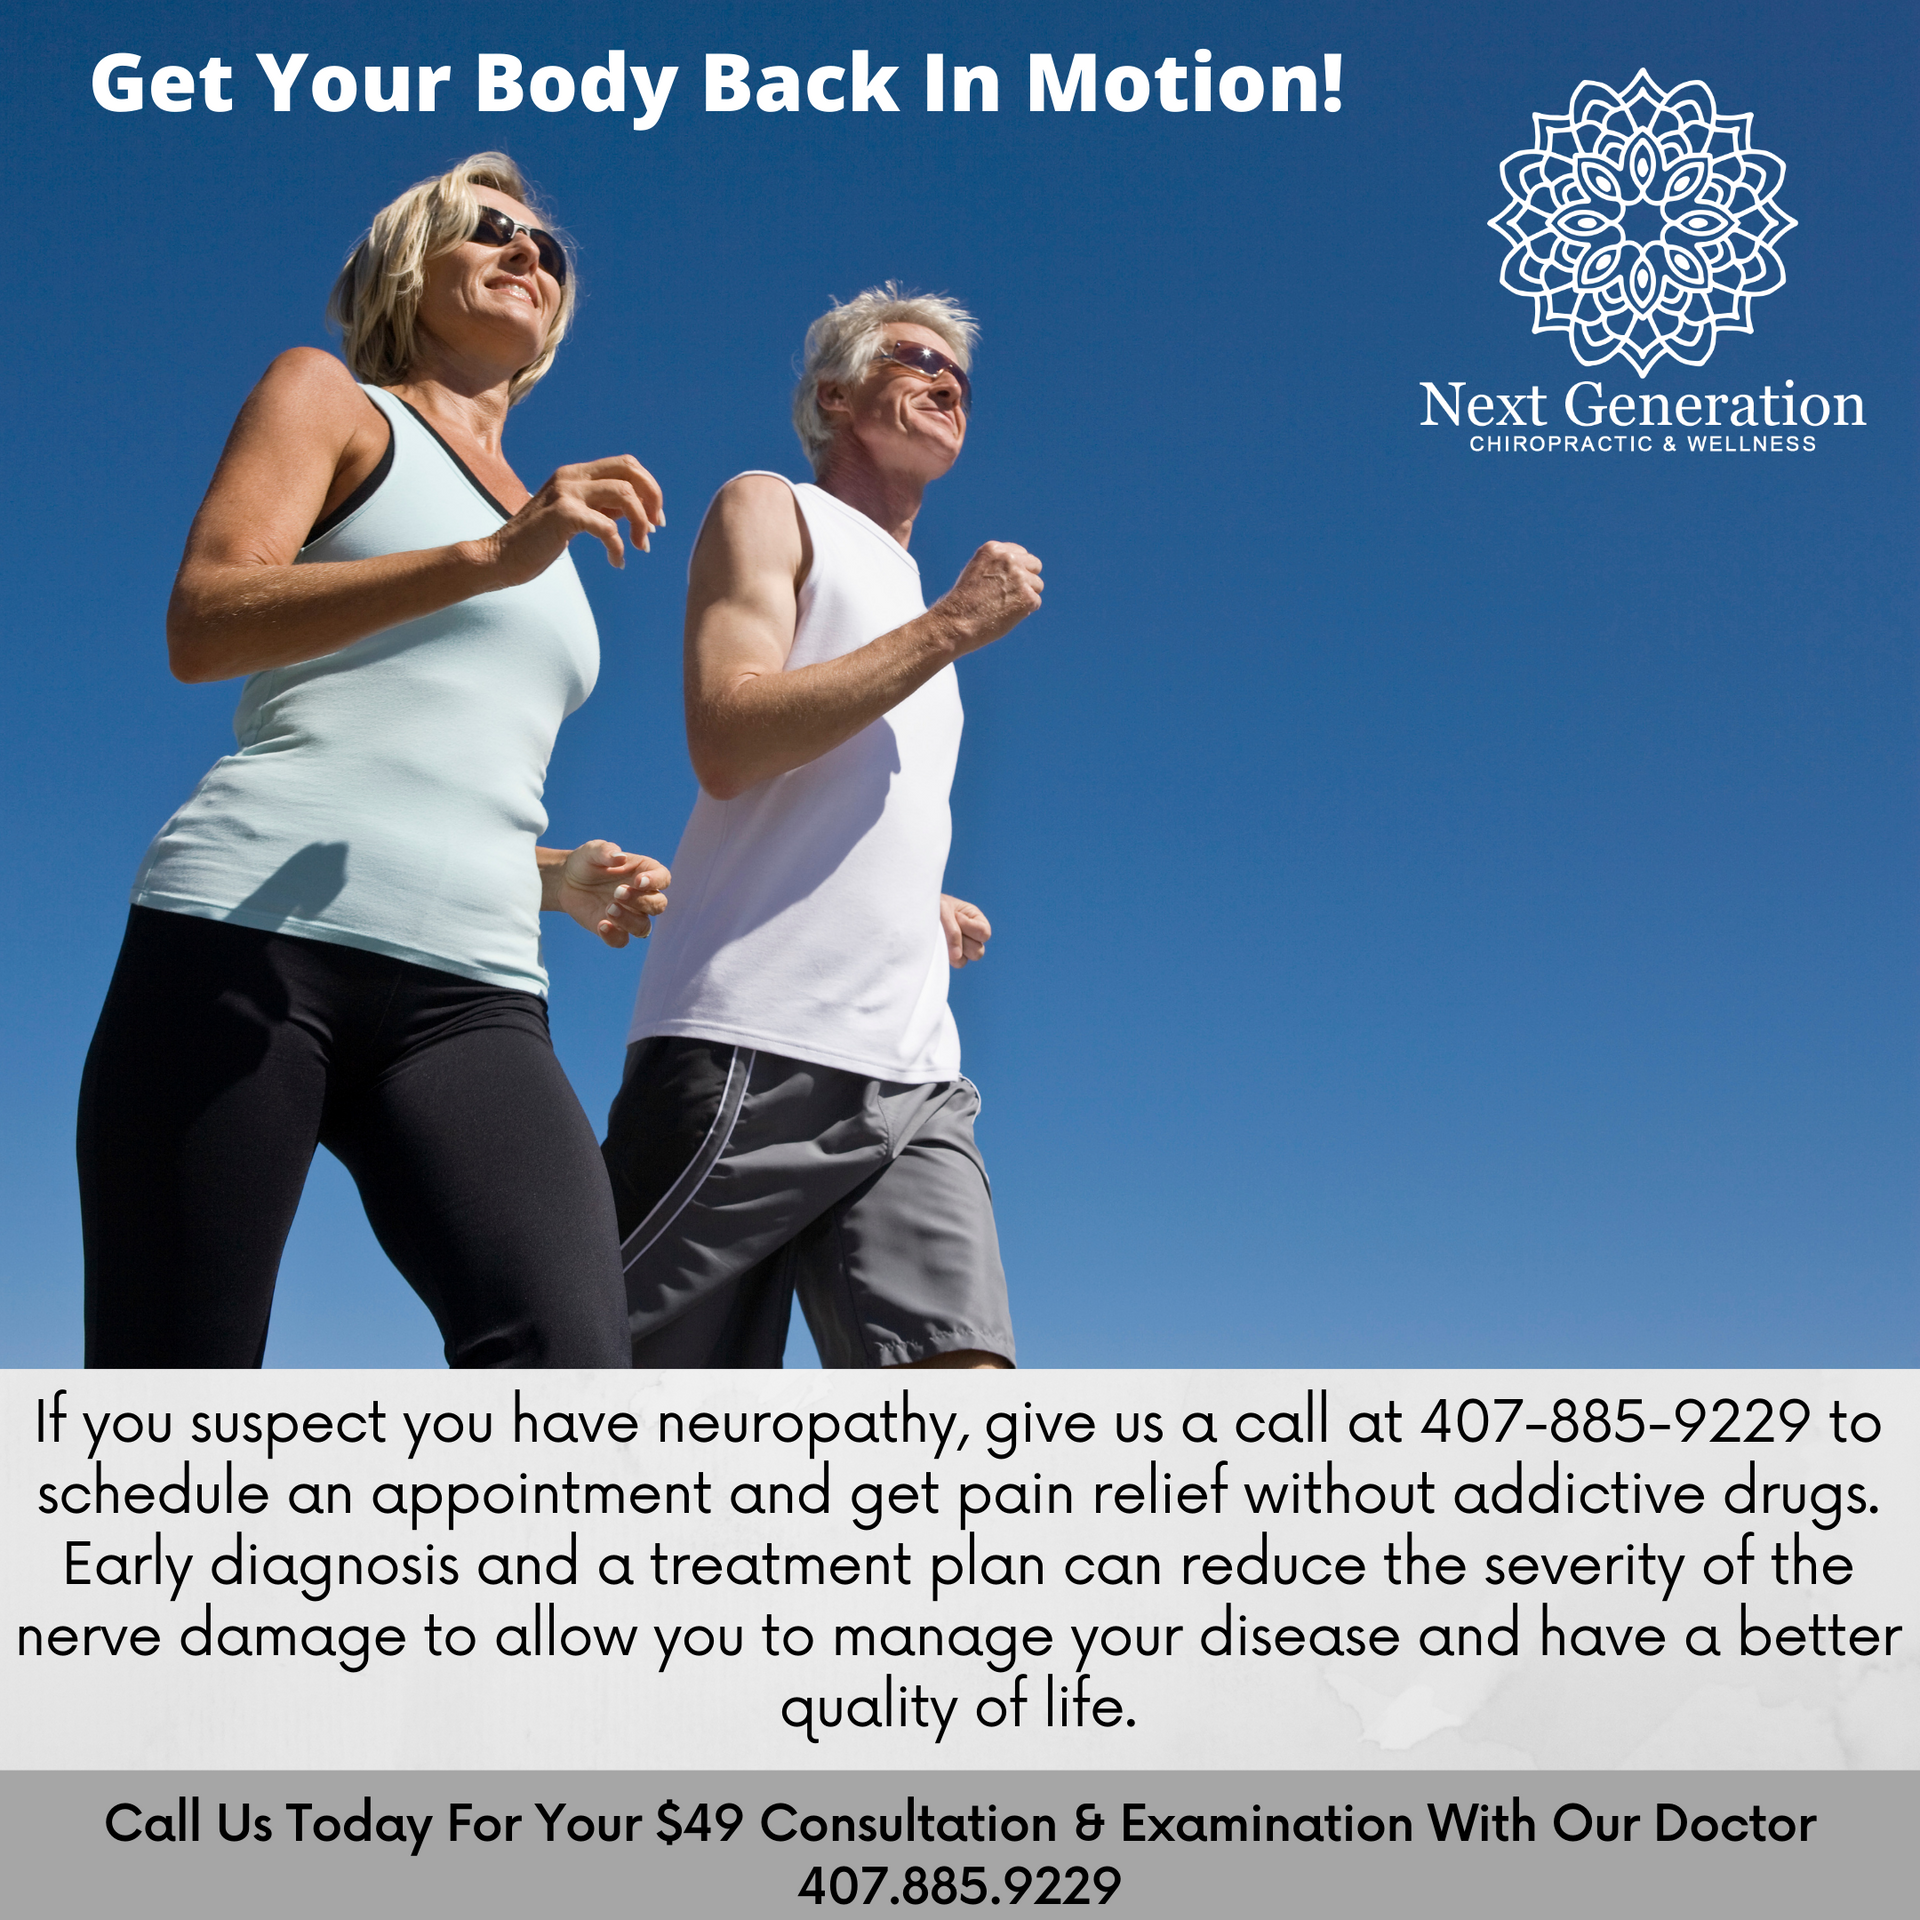 Get your body back in motion